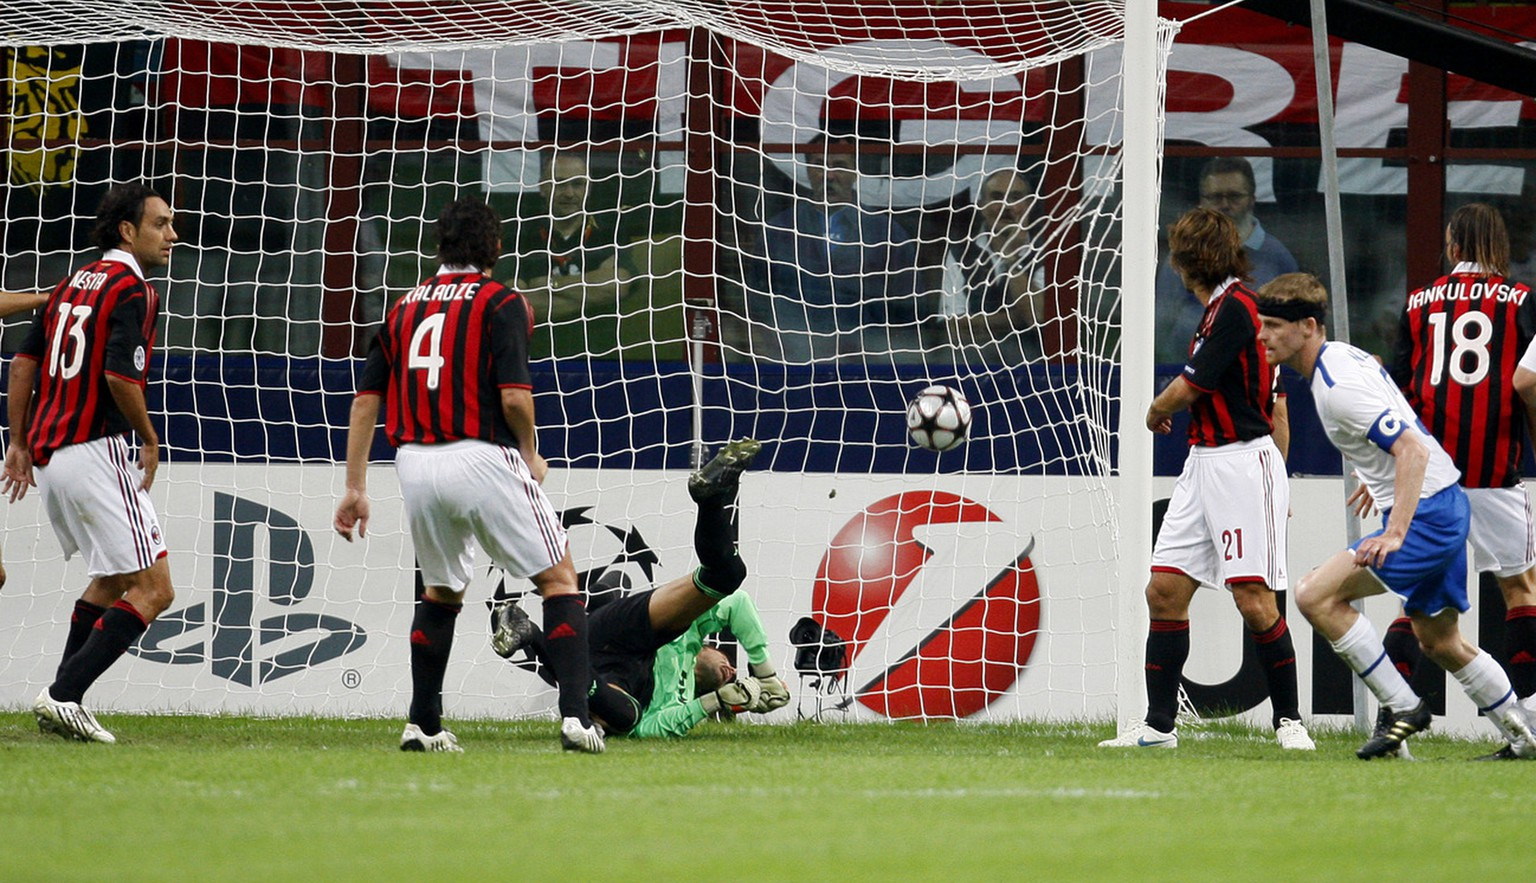 Zurich defender Hannu Tihinen, right in blue shorts, of Finland, scores a goal during the Champions League, group C, soccer match between AC Milan and FC Zurich at the San Siro stadium in Milan, Italy, Wednesday, Sept. 30, 2009. (AP Photo/Antonio Calanni)